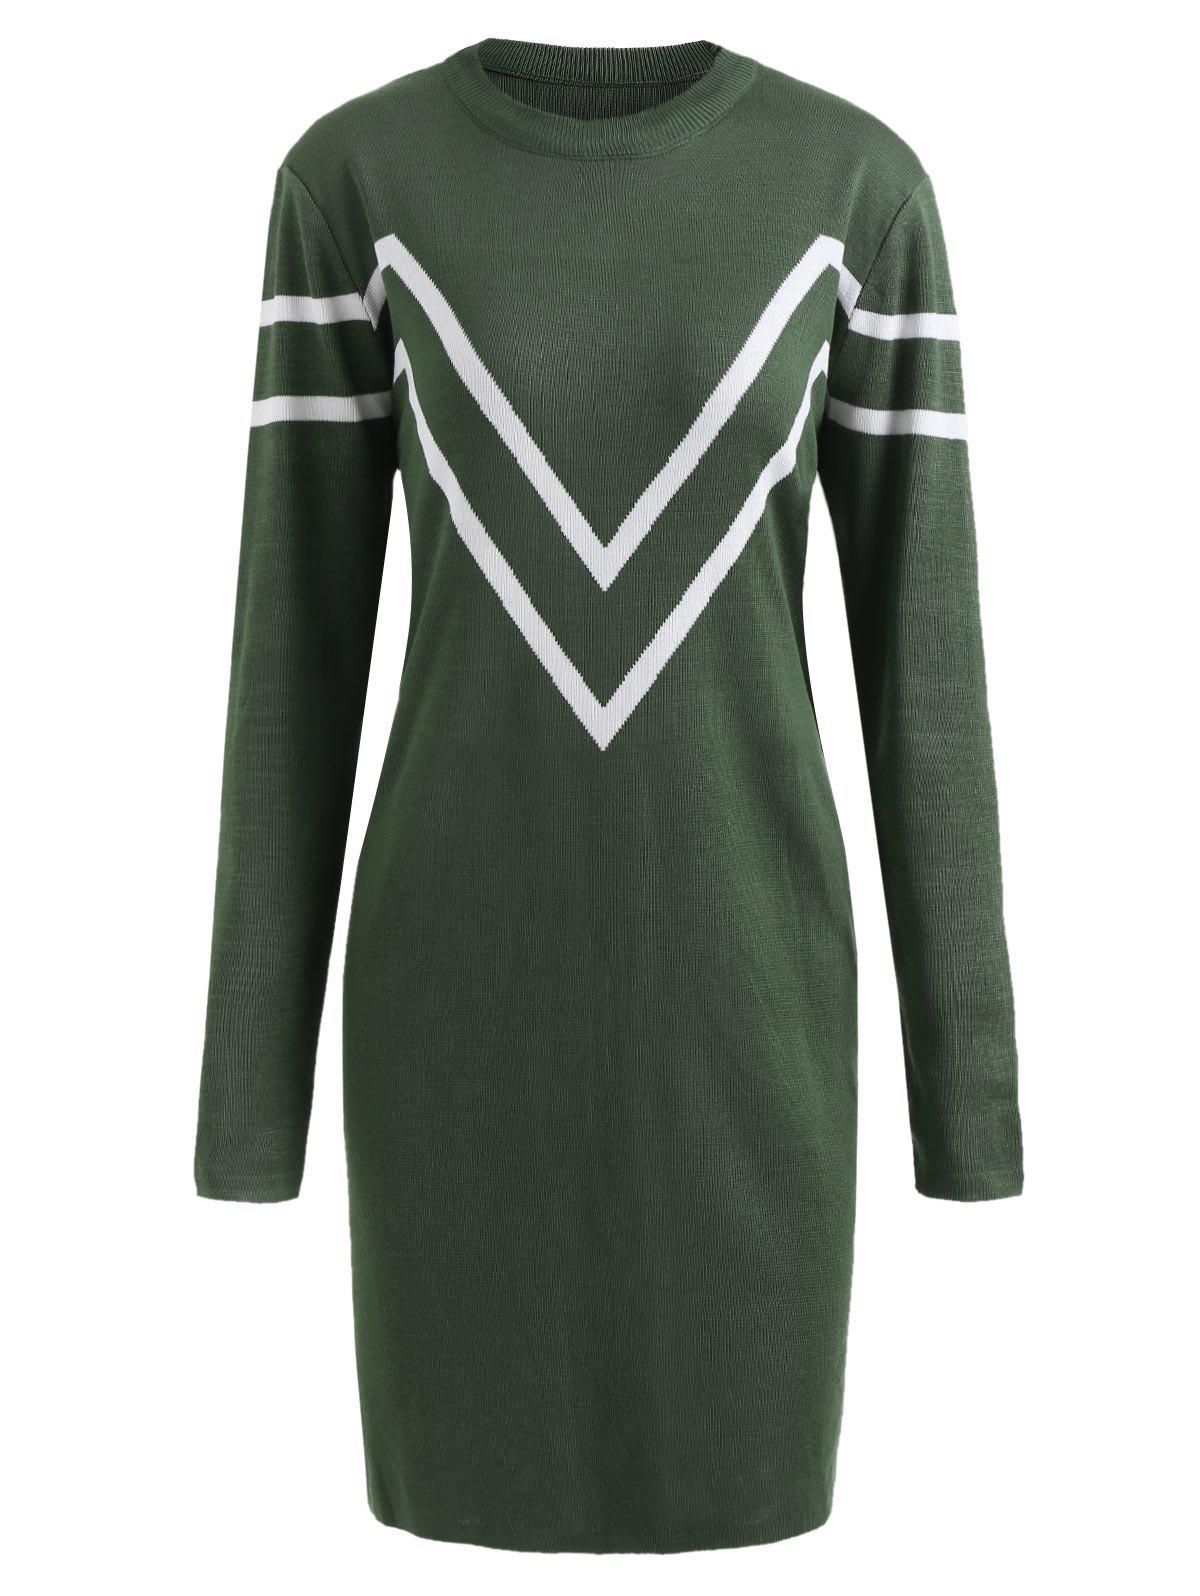 33% OFF] Plus Size Chevron Long Sleeve Sweater Dress | Rosegal